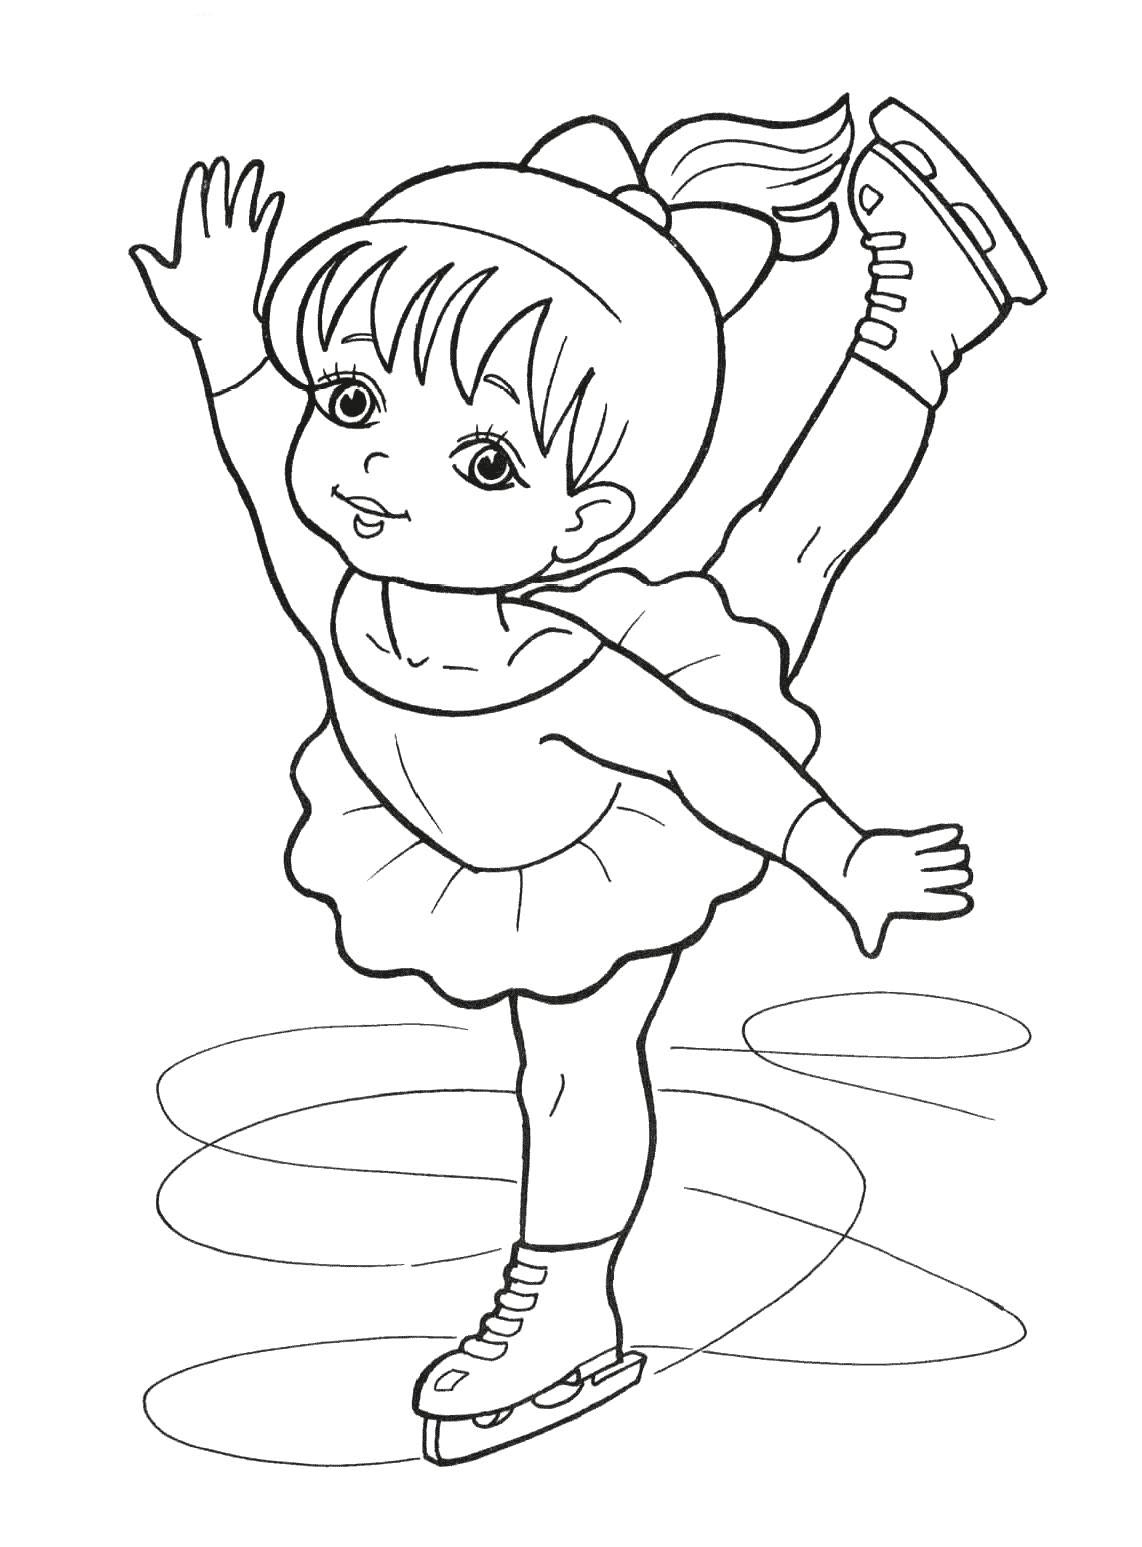 ice skating colouring pictures hello kitty ice skating from hello kitty coloring page ice colouring pictures skating